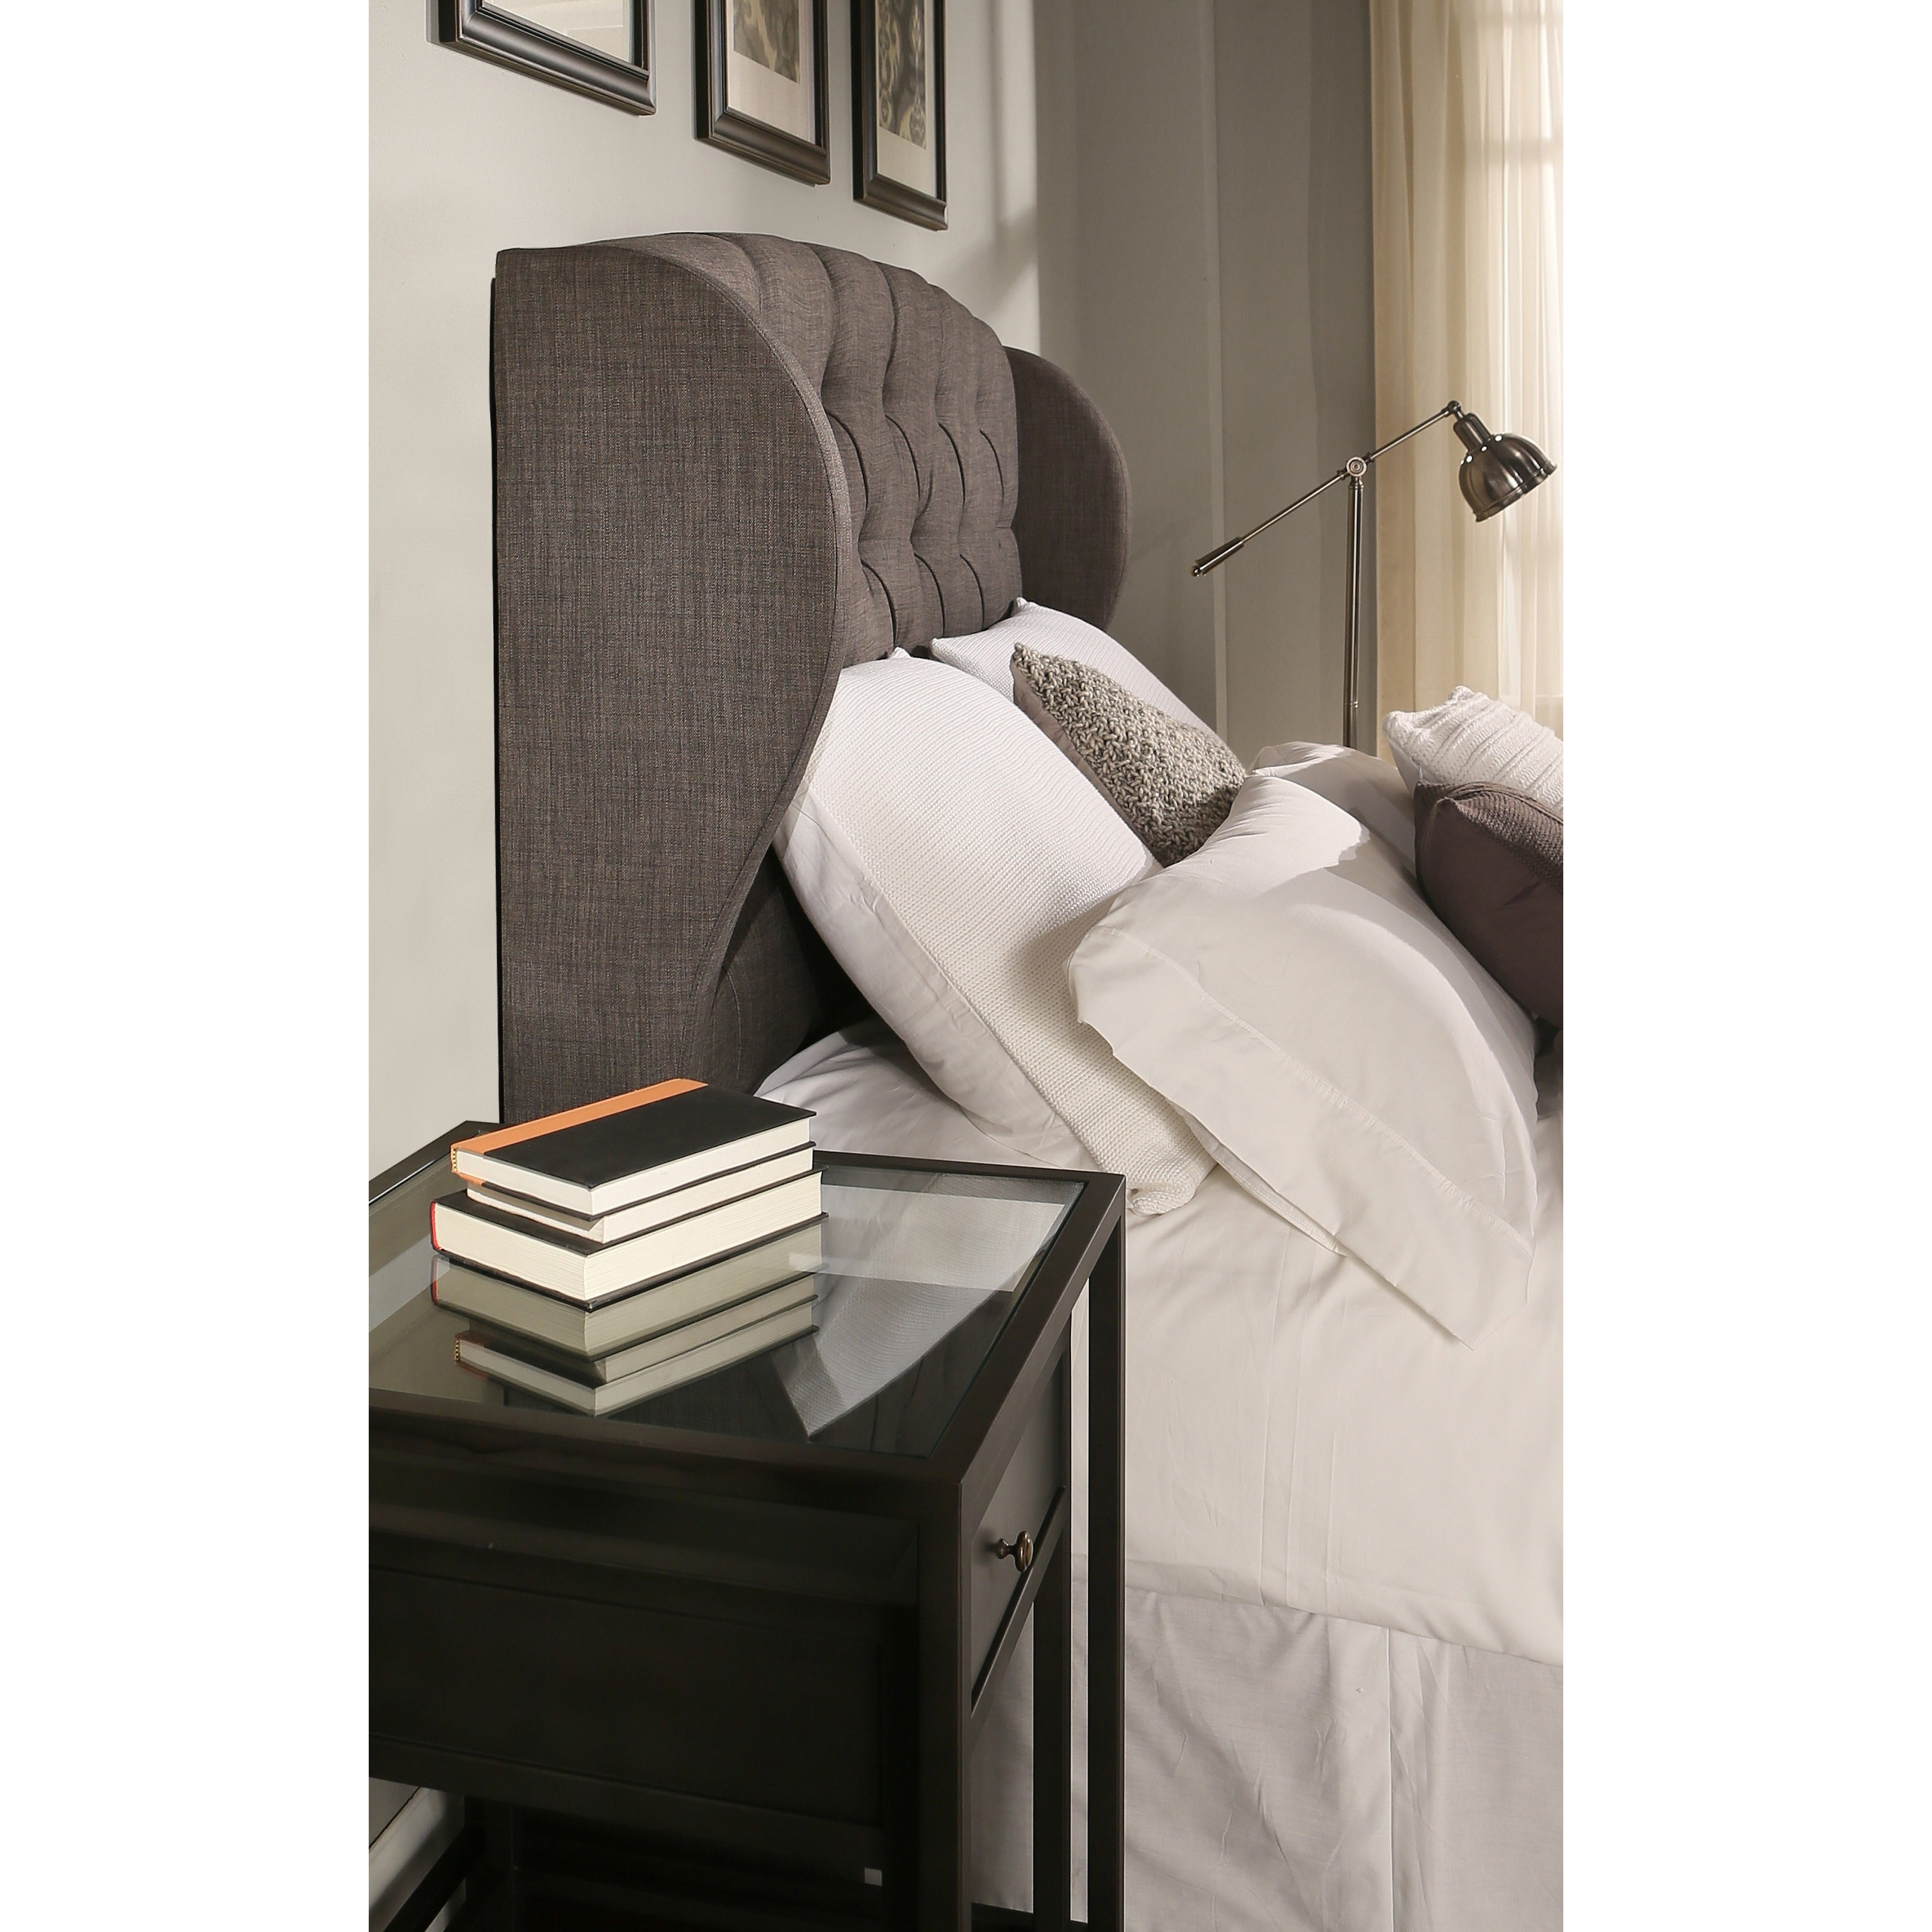 Republic Design House Archer Grey Tufted Upholstered Headboard Padded Bench Collection Overstock 11460025